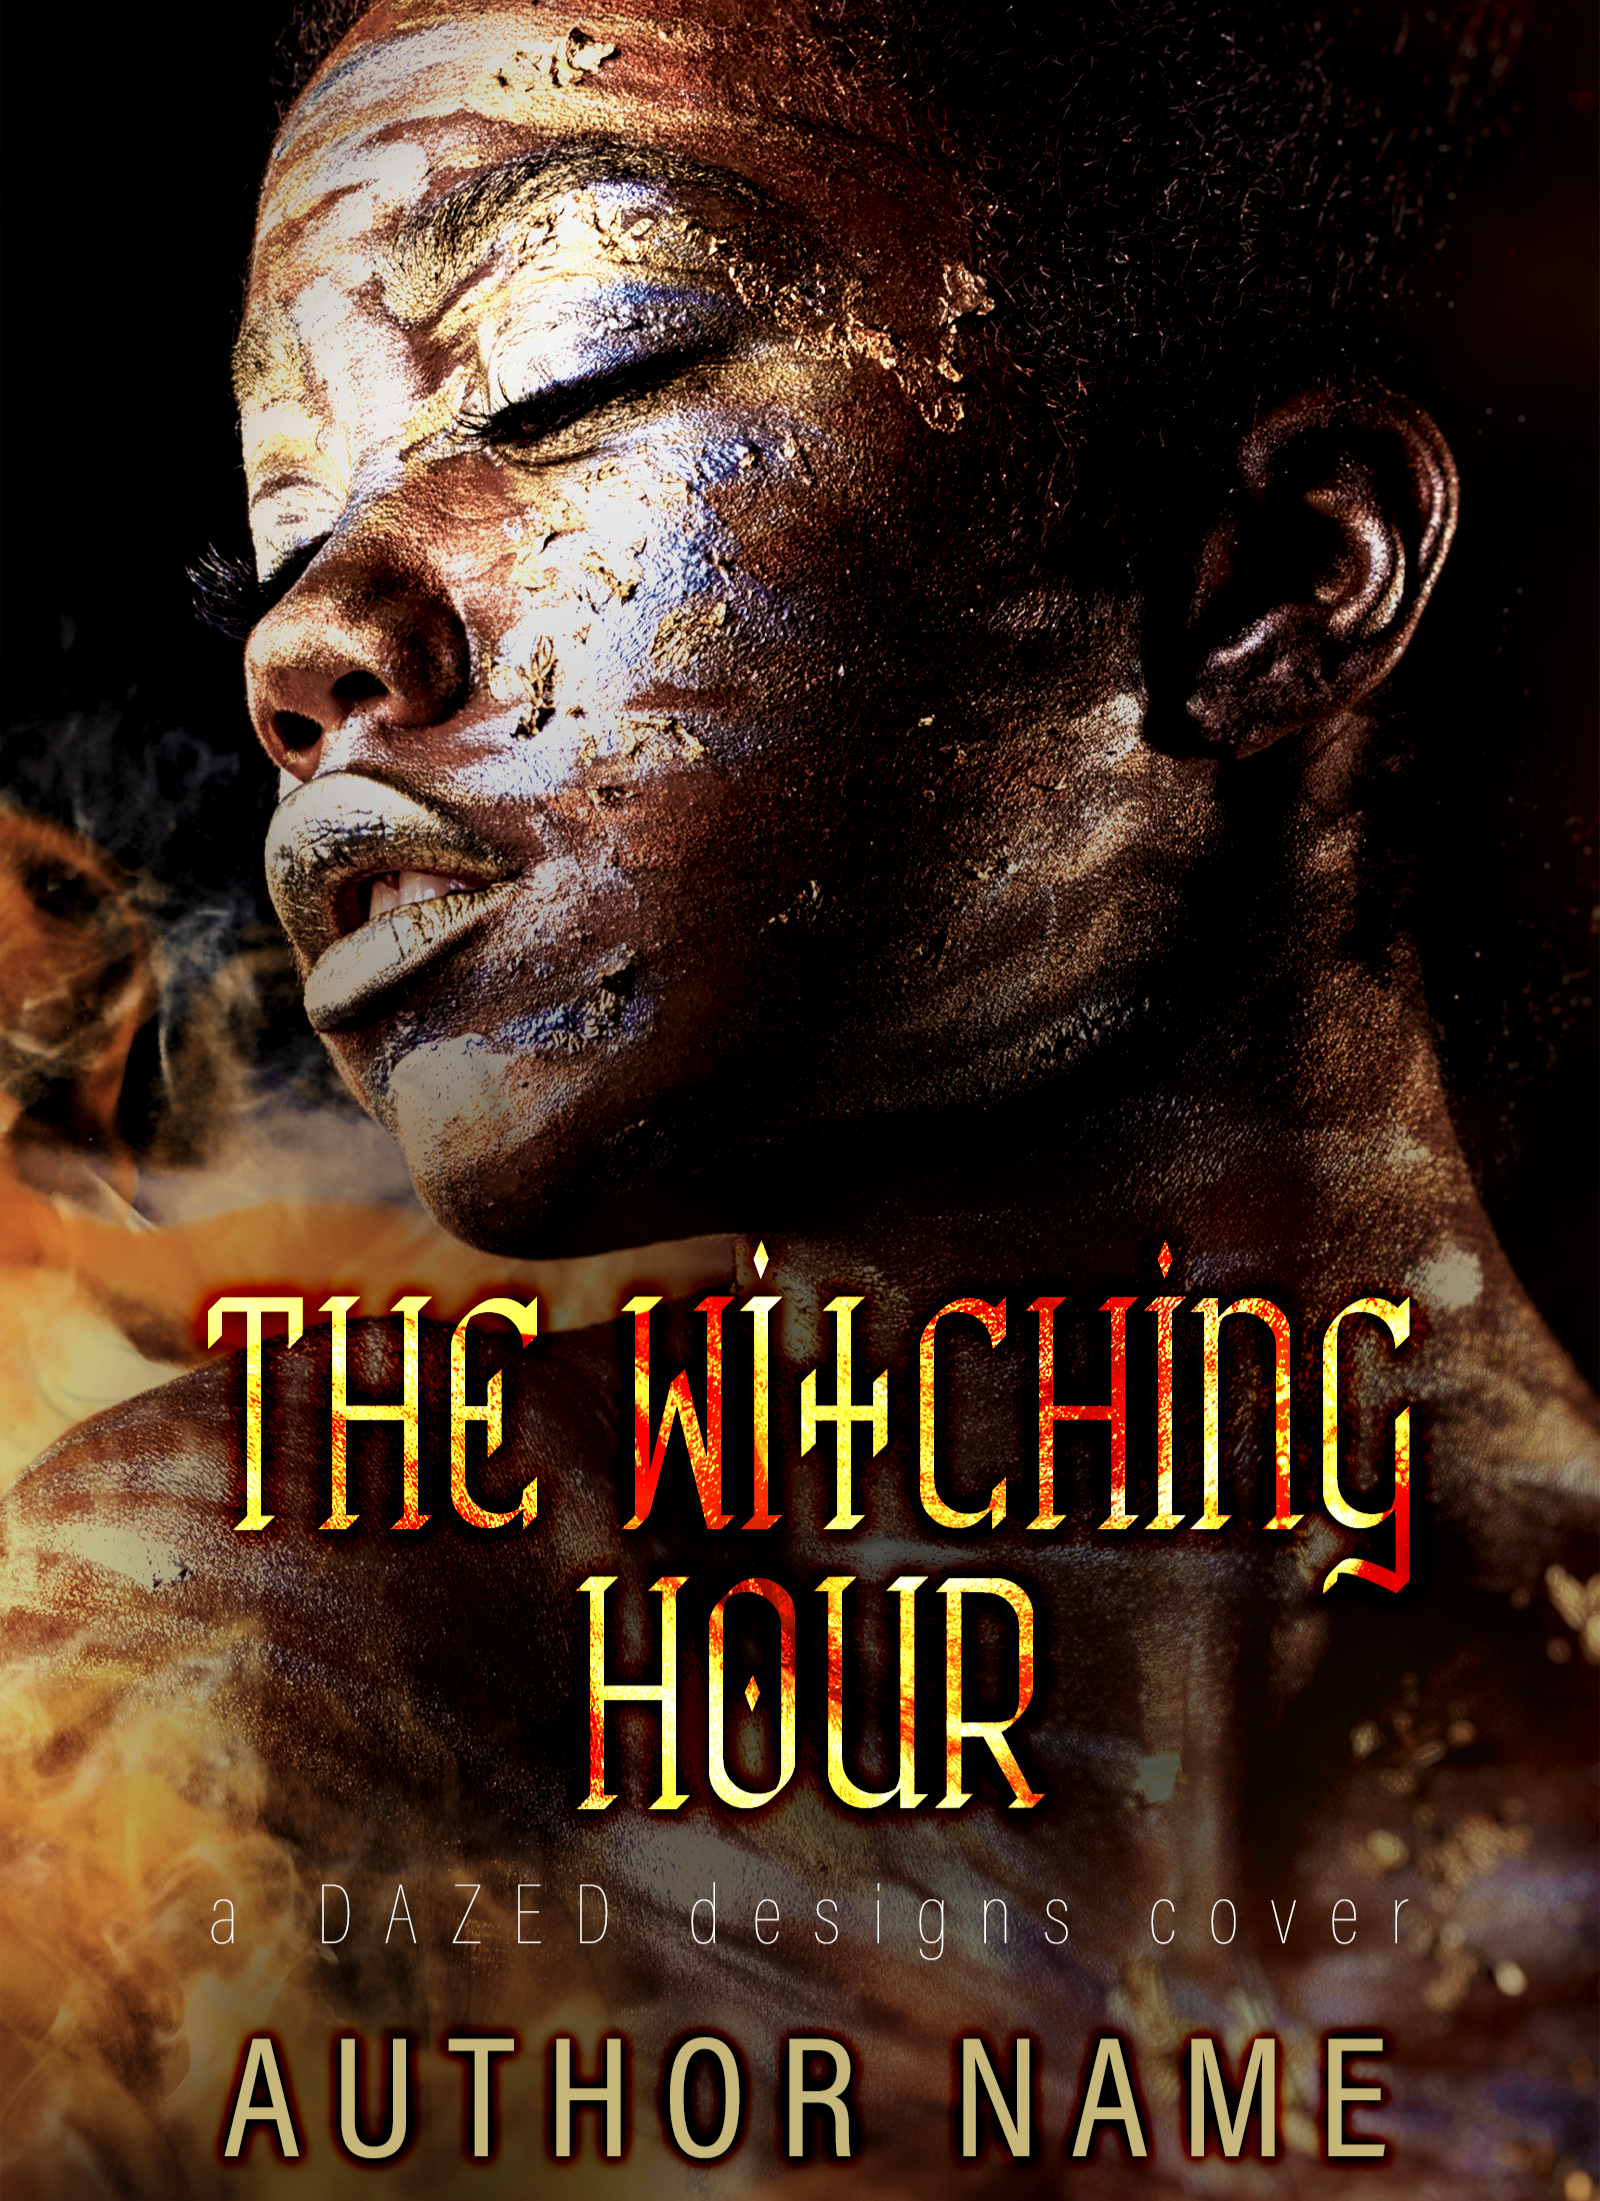 THE%20WITCHING%20HOUR%20EBOOK_edited.png